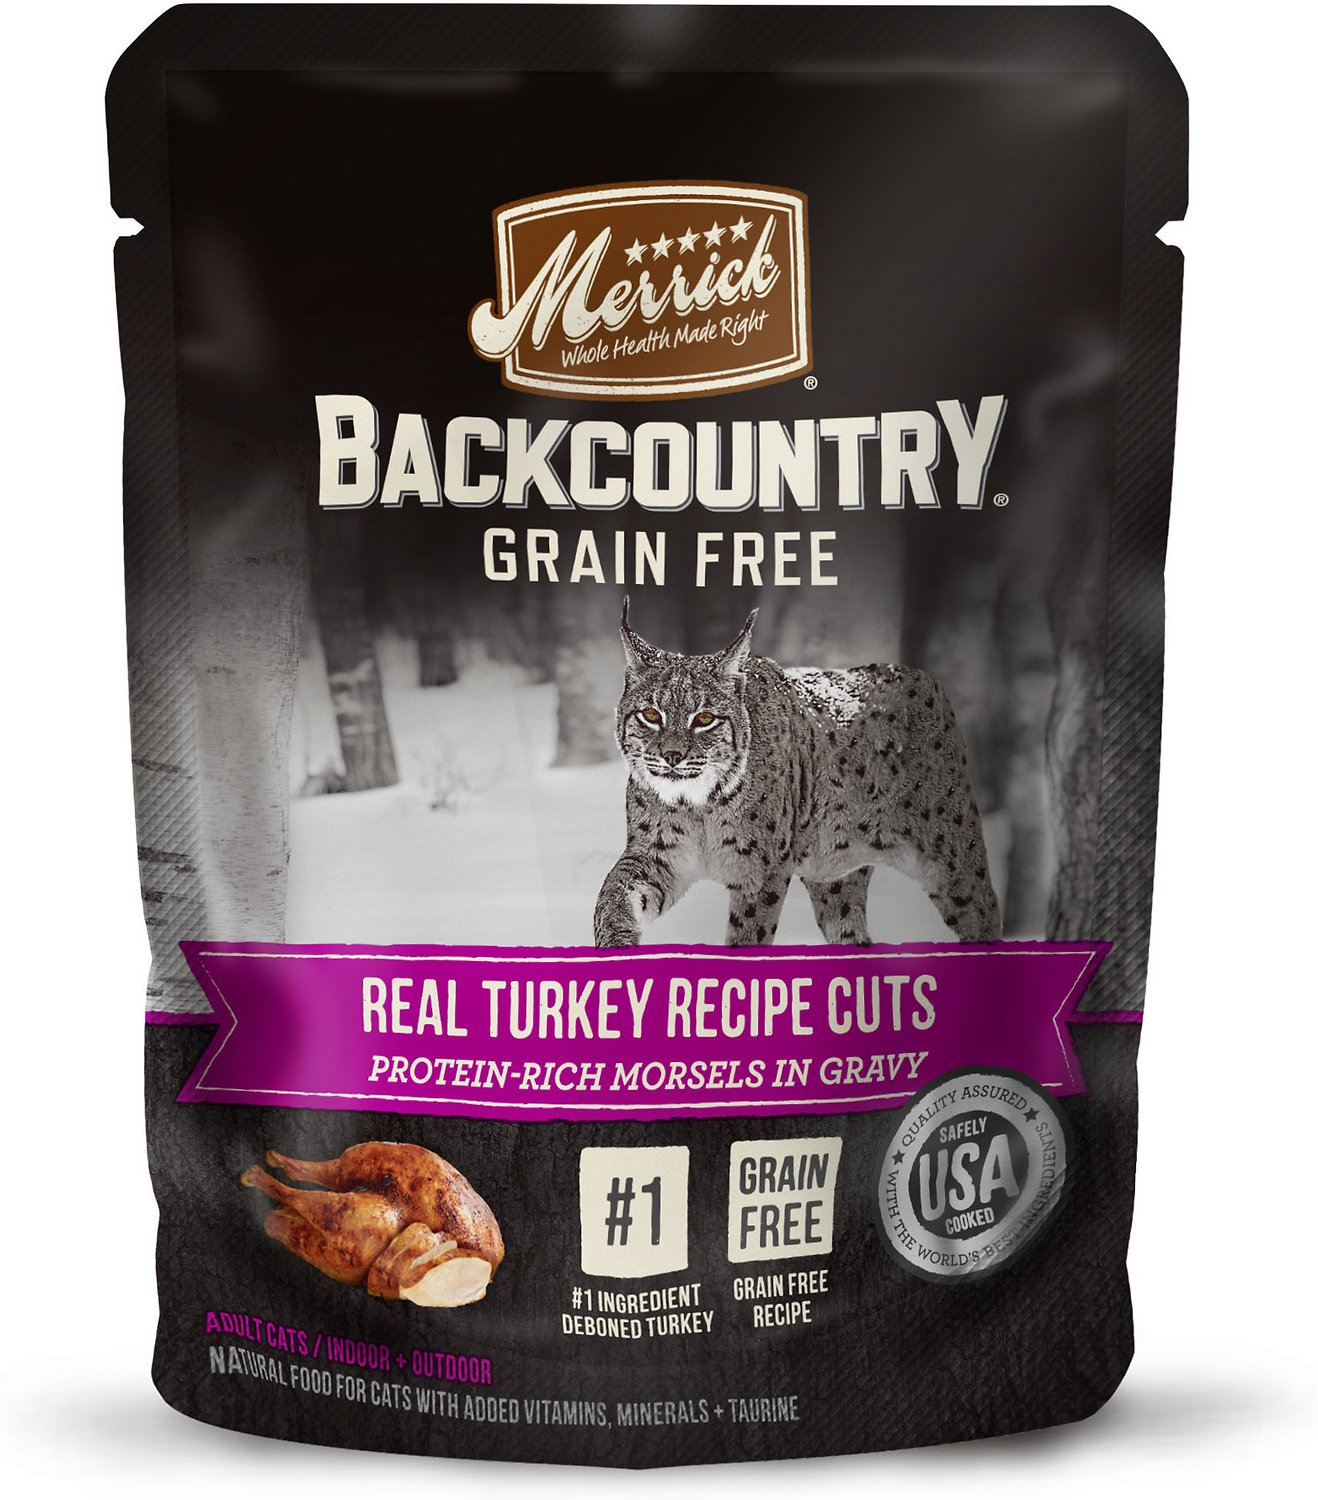 Merrick Backcountry Grain-Free Morsels in Gravy Real Turkey Recipe Cuts Cat Food Pouches Image